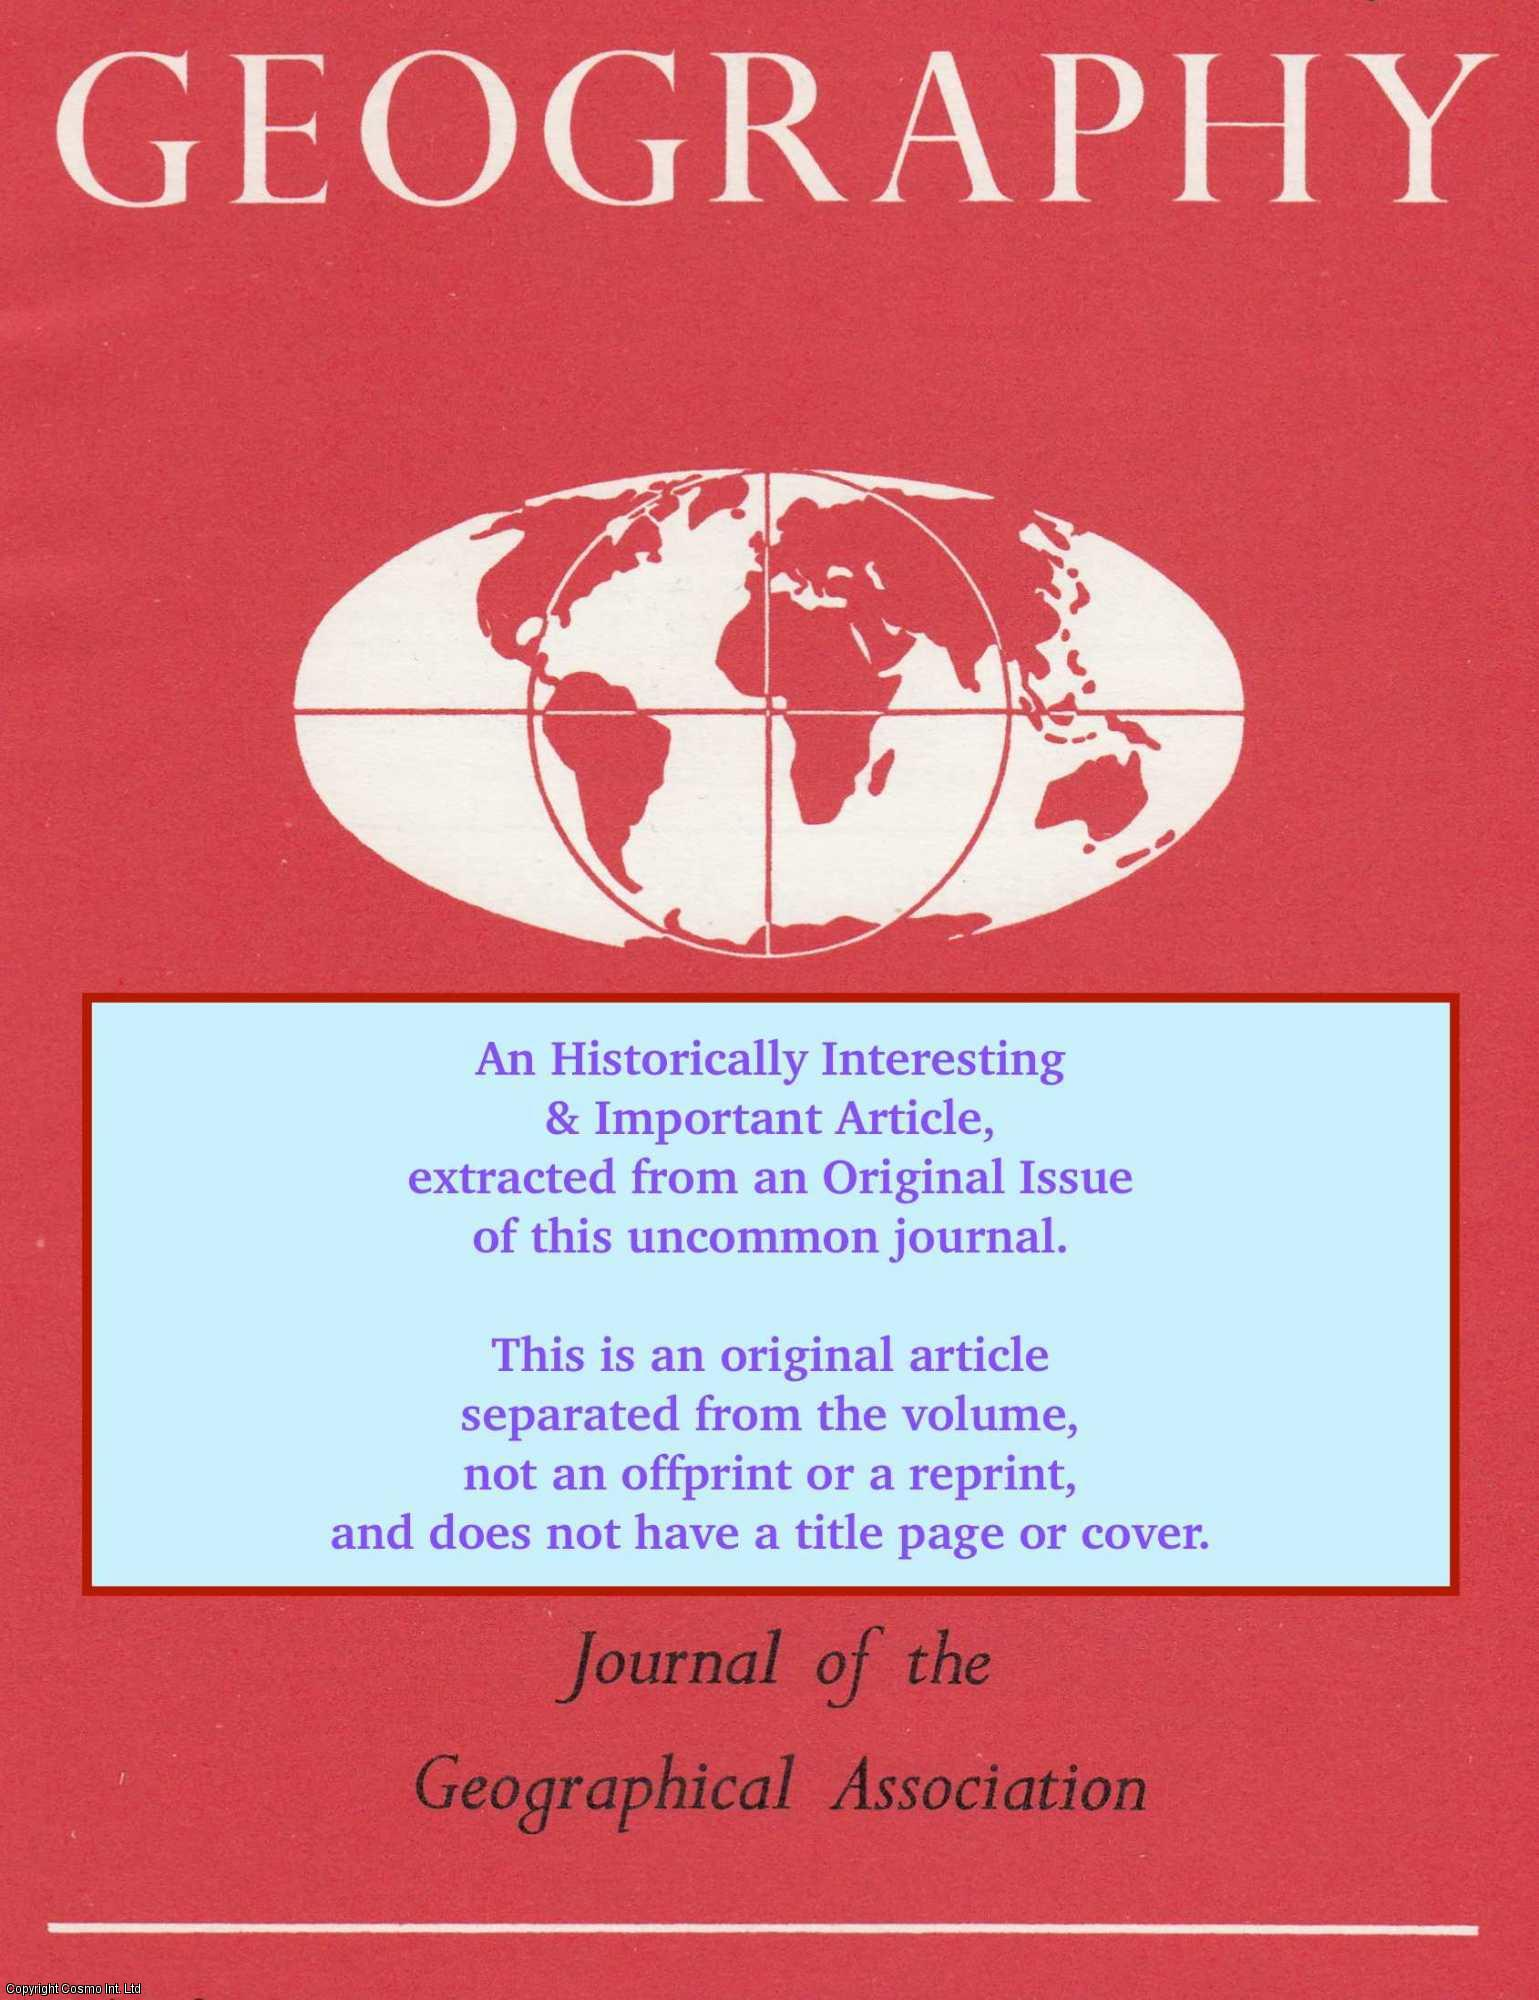 EASTWOOD, D. A. - The Meridan Lowlands of Venezuela: A Waste of Agricultural Potential. An original article from The Journal of The Geographical Association, 1979.